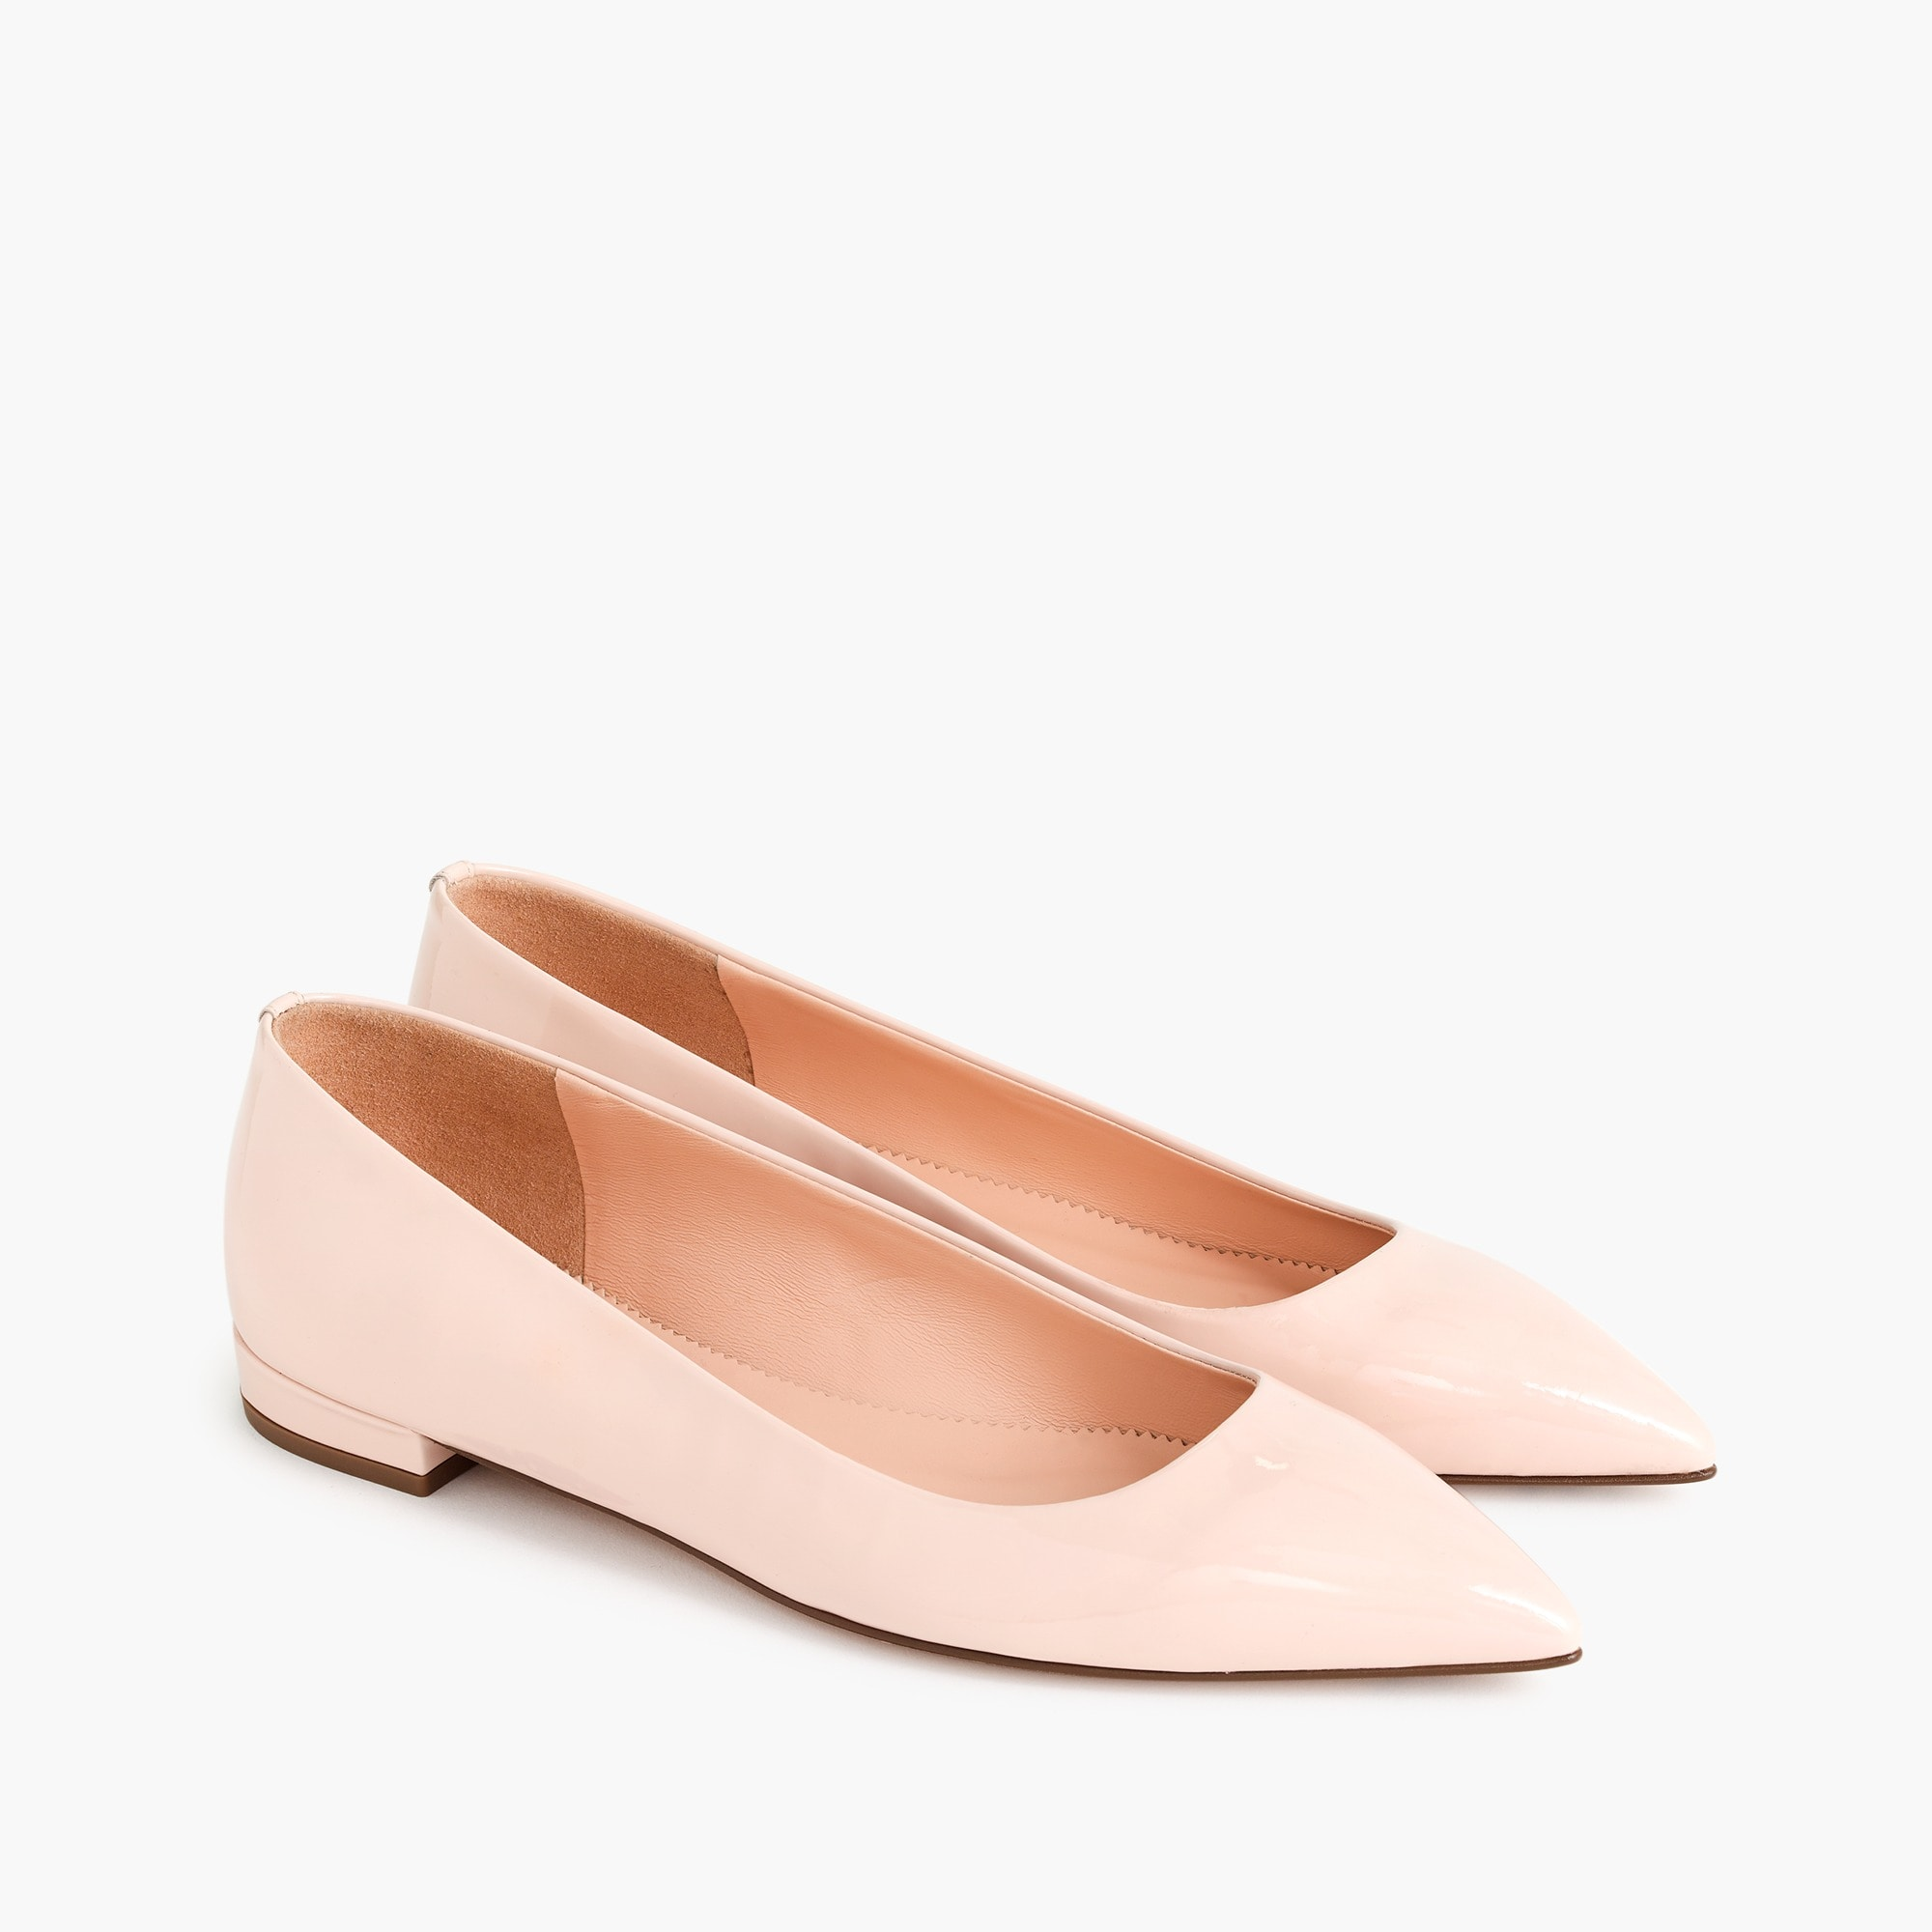 womens Pointed-toe flats